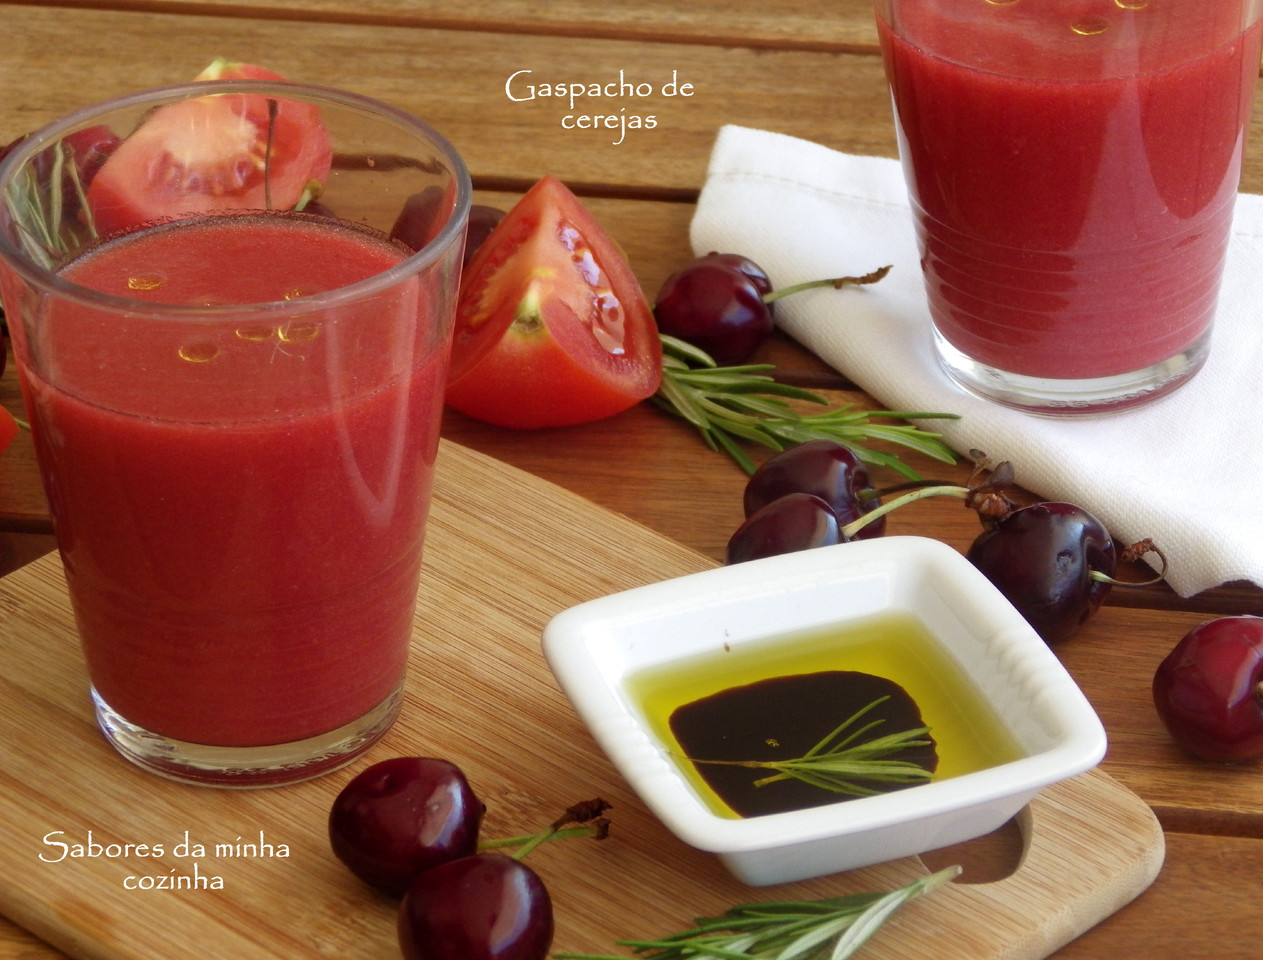 IMGP4804-Gaspacho de cerejas-Blog.JPG